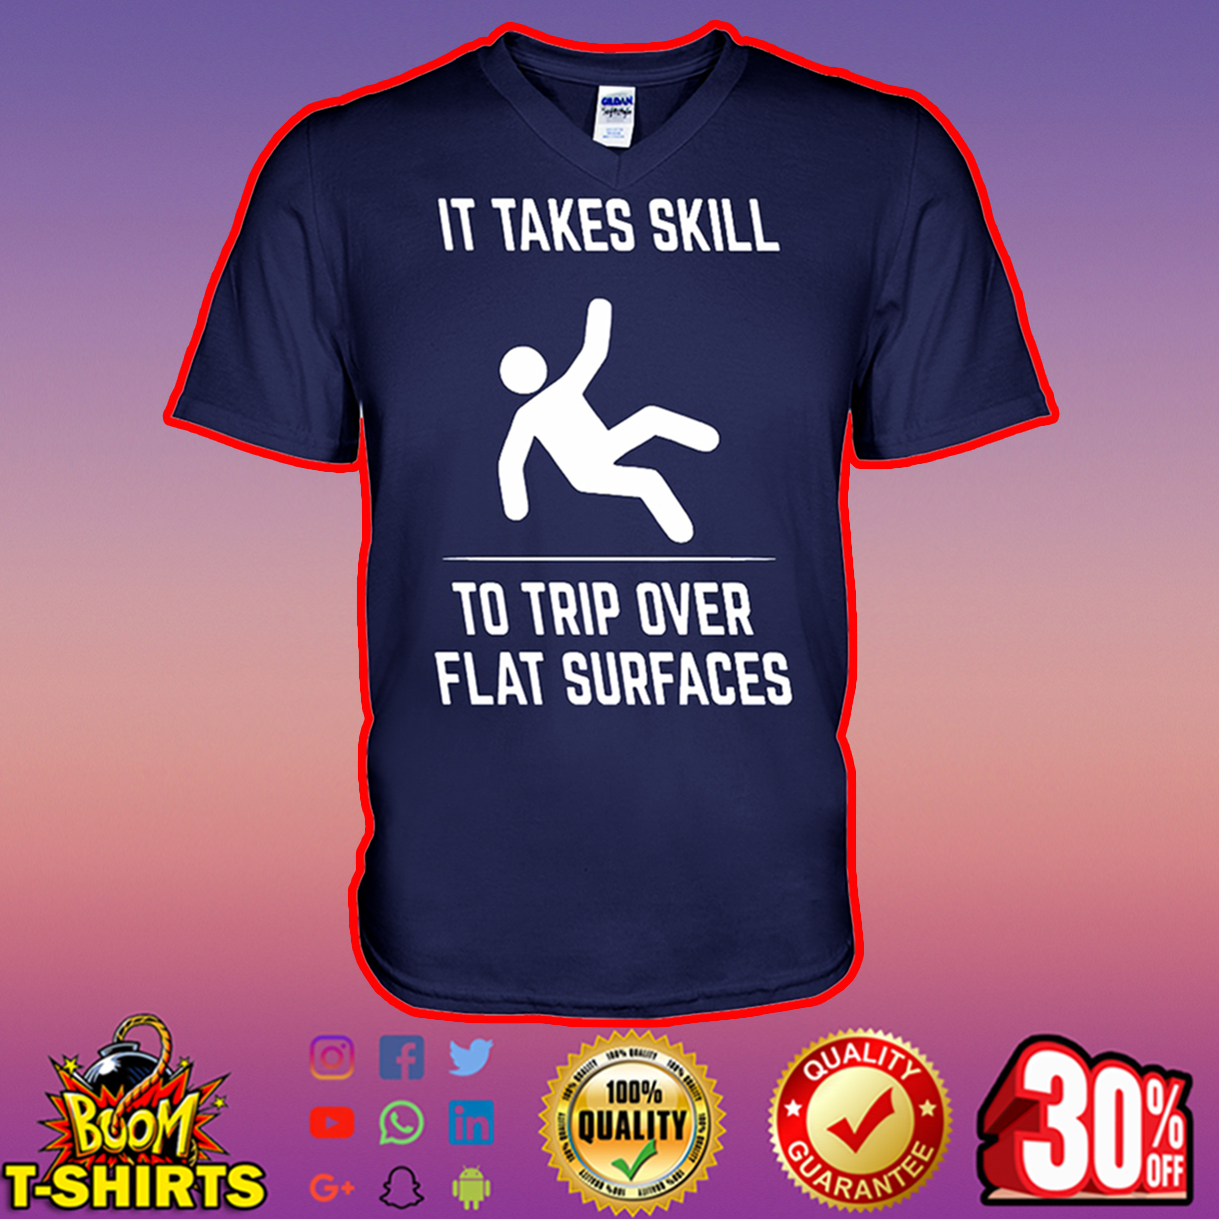 It takes skill to trip over flat surfaces v-neck